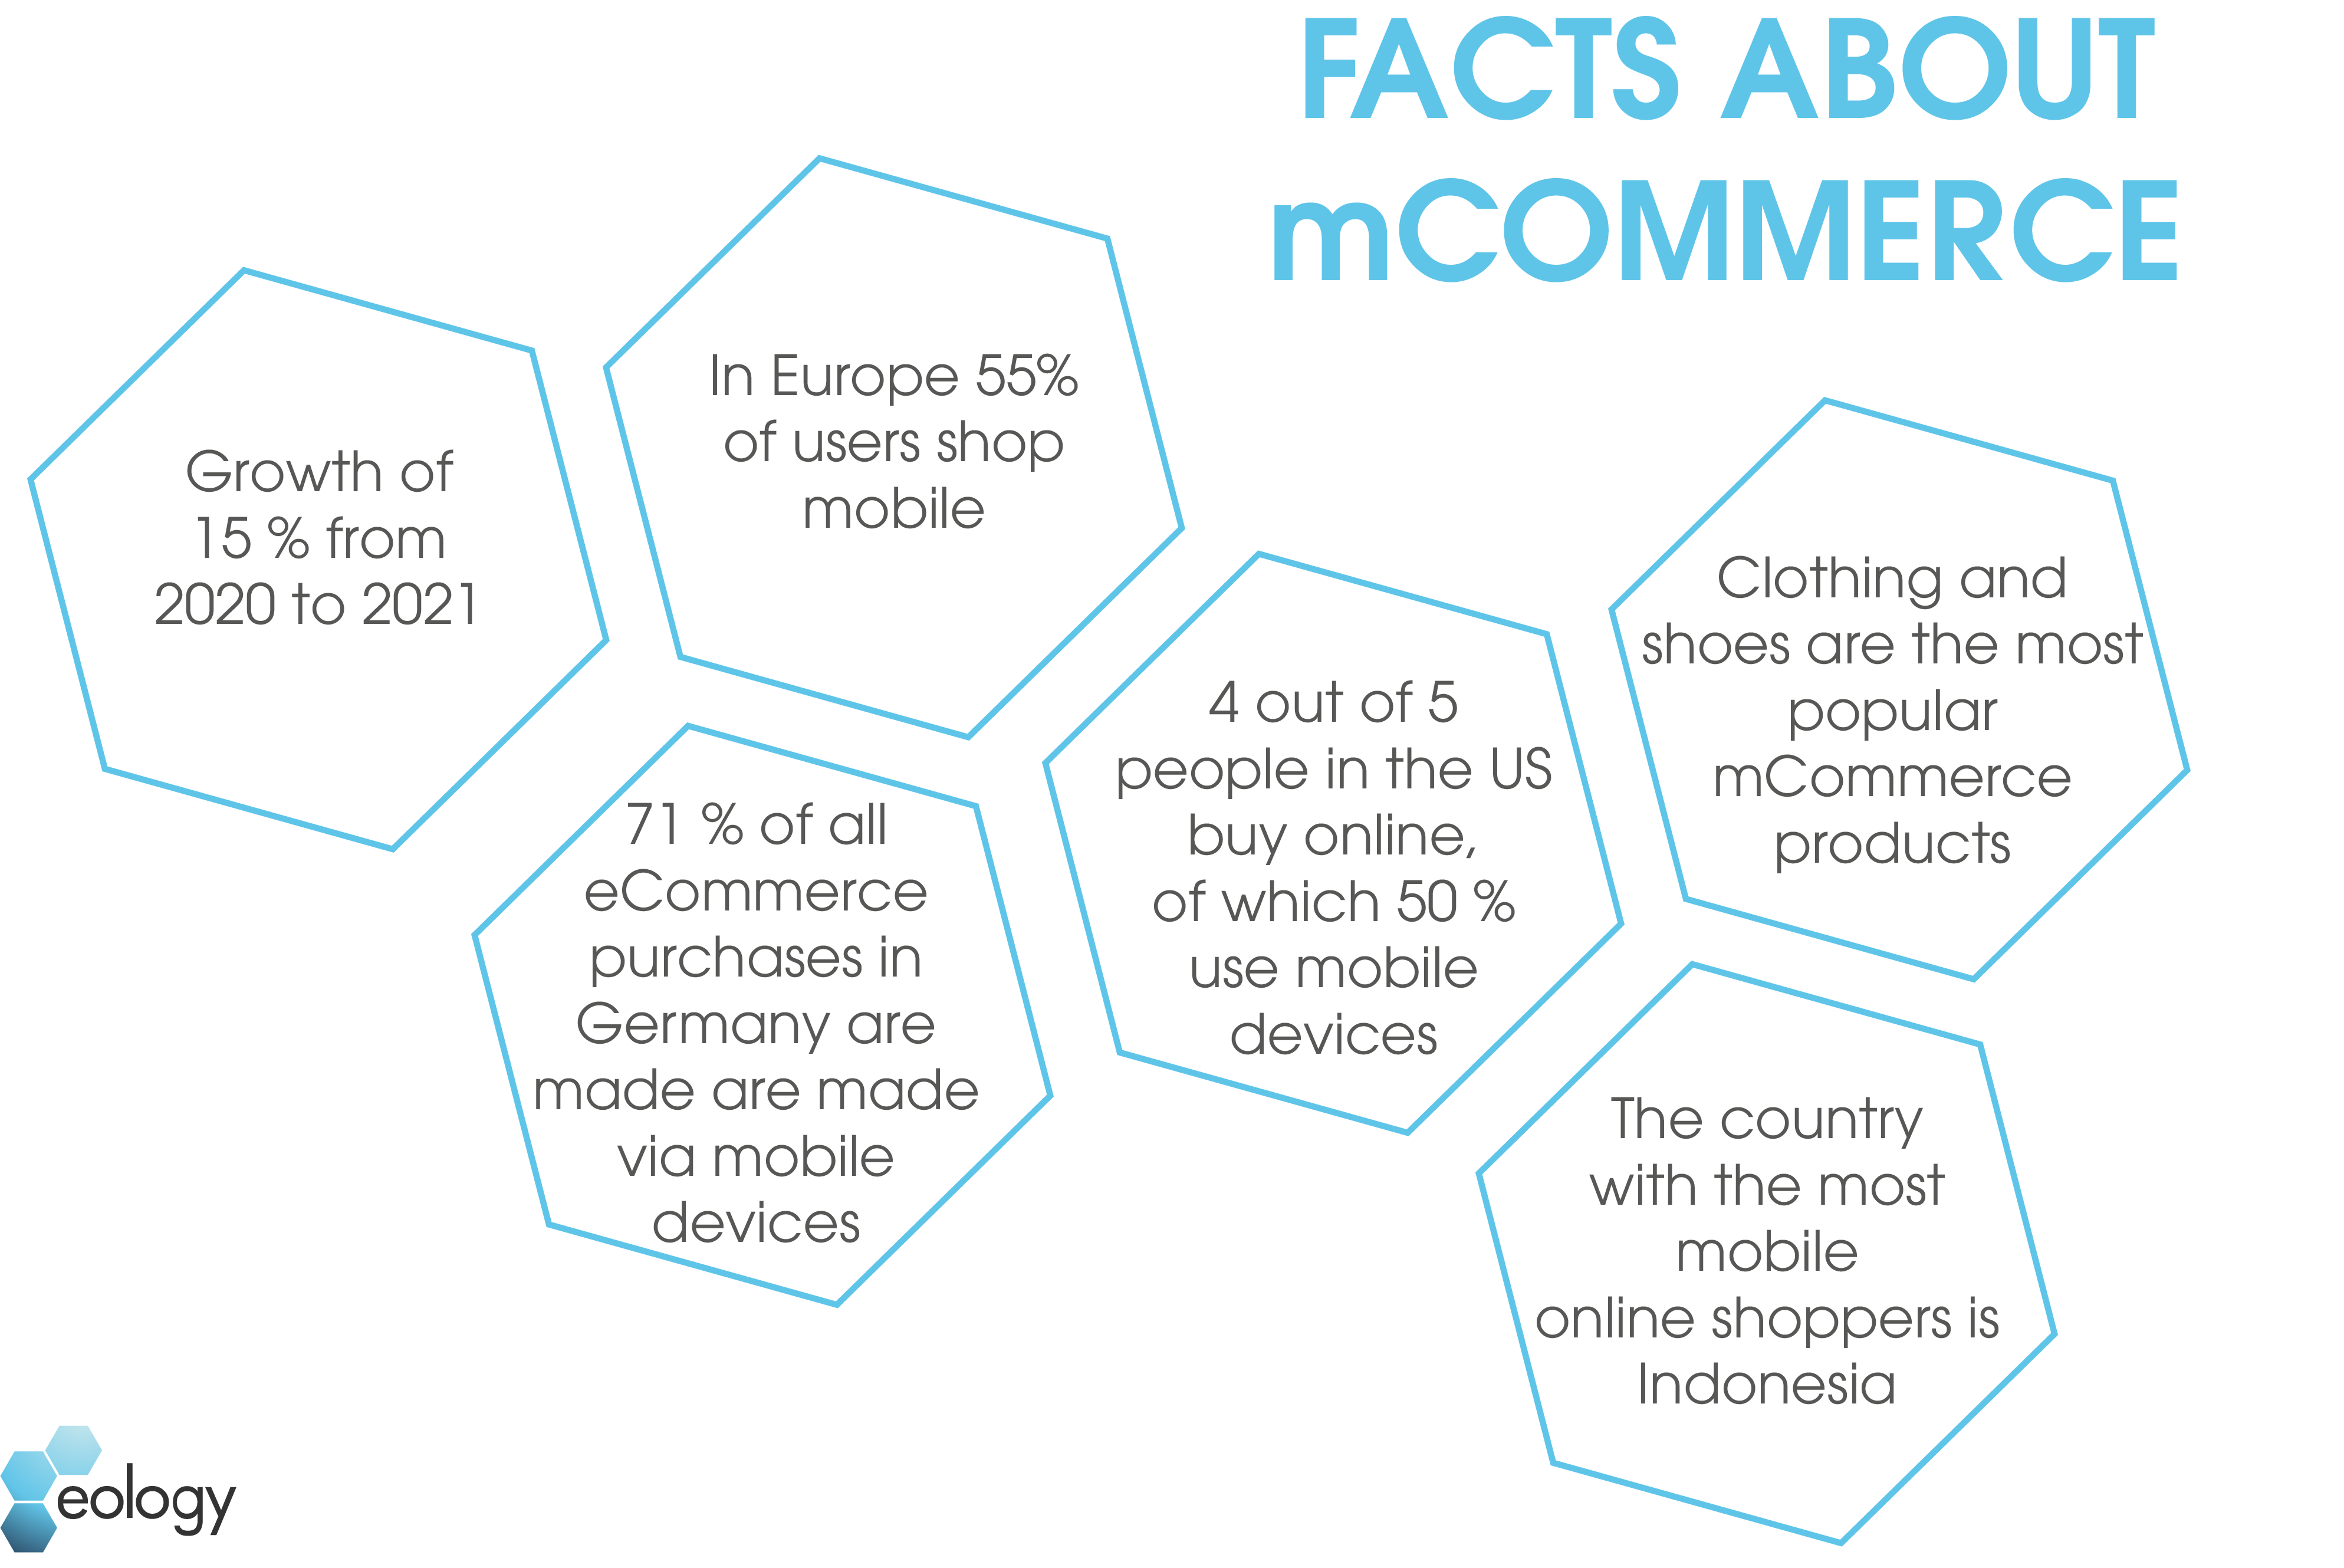 The image shows a graphic depicting six facts surrounding m-commerce, or mobile eCommerce. These facts are: 1. 15% growth from 2020 to 2021. 2. 55% of users in Europe make mobile purchases. 3. 71% of all eCommerce purchases in Germany are made via a mobile device 4. four out of five people in the U.S. shop online, 50% of whom shop mobile 5. clothing and shoes are the most popular m-commerce products 6. the country with the most mobile online shoppers is Indonesia